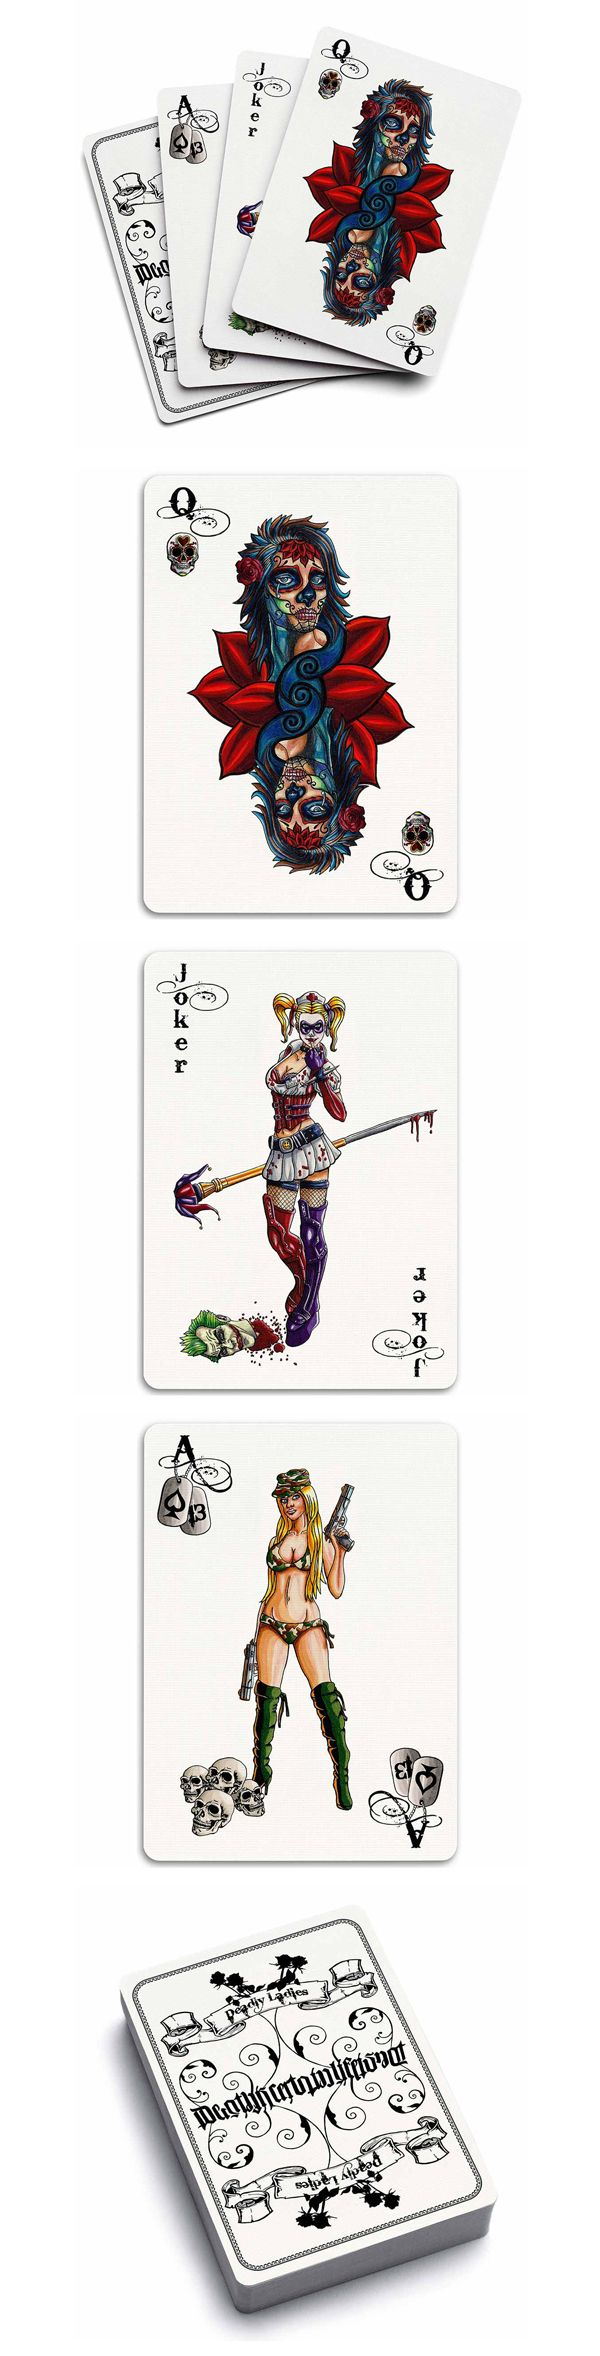 "DEADLY LADIES CARD SERIES - Deadly ladies card series that features an ace of spades card aka the death card, a day of the dead themed queen of hearts card, a joker card of The Jokers sidekick Harley killing him and an ambigram on the reverse of the cards that says ""Death is Certain Life is Not"". See more at http://www.markmetcalfe.co.za/"